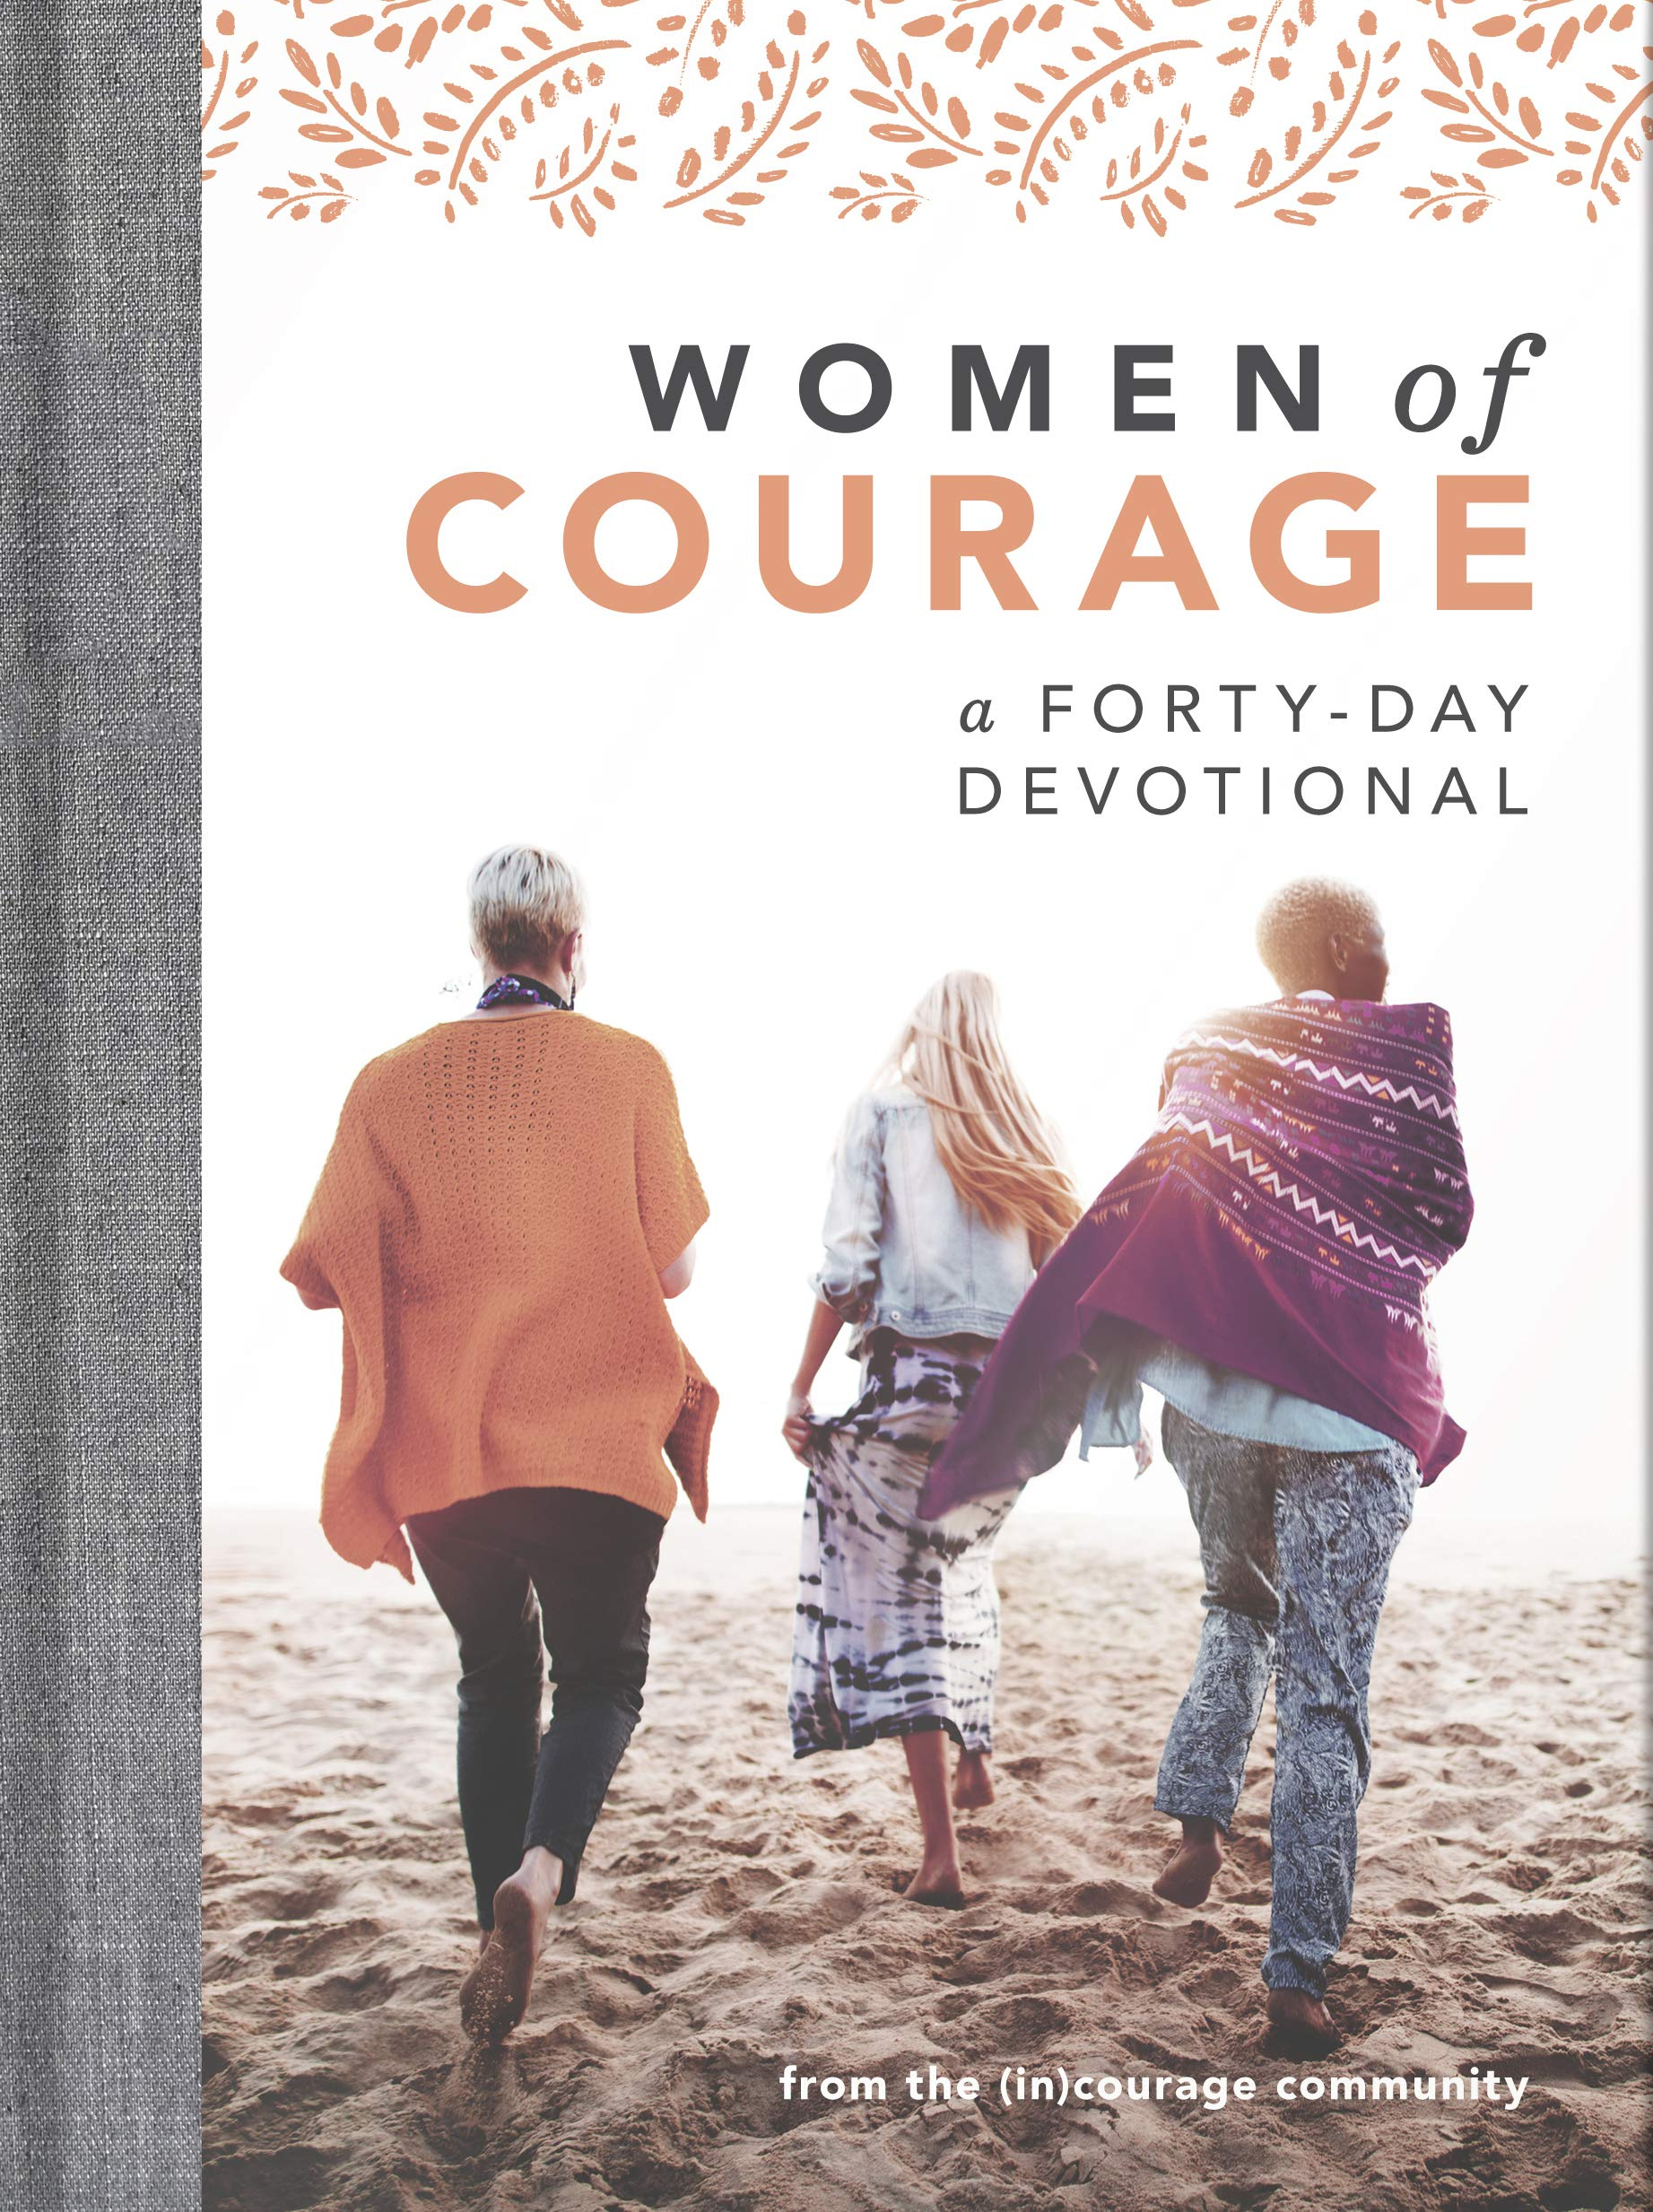 Women of Courage: A Forty-Day Devotional {A Review}